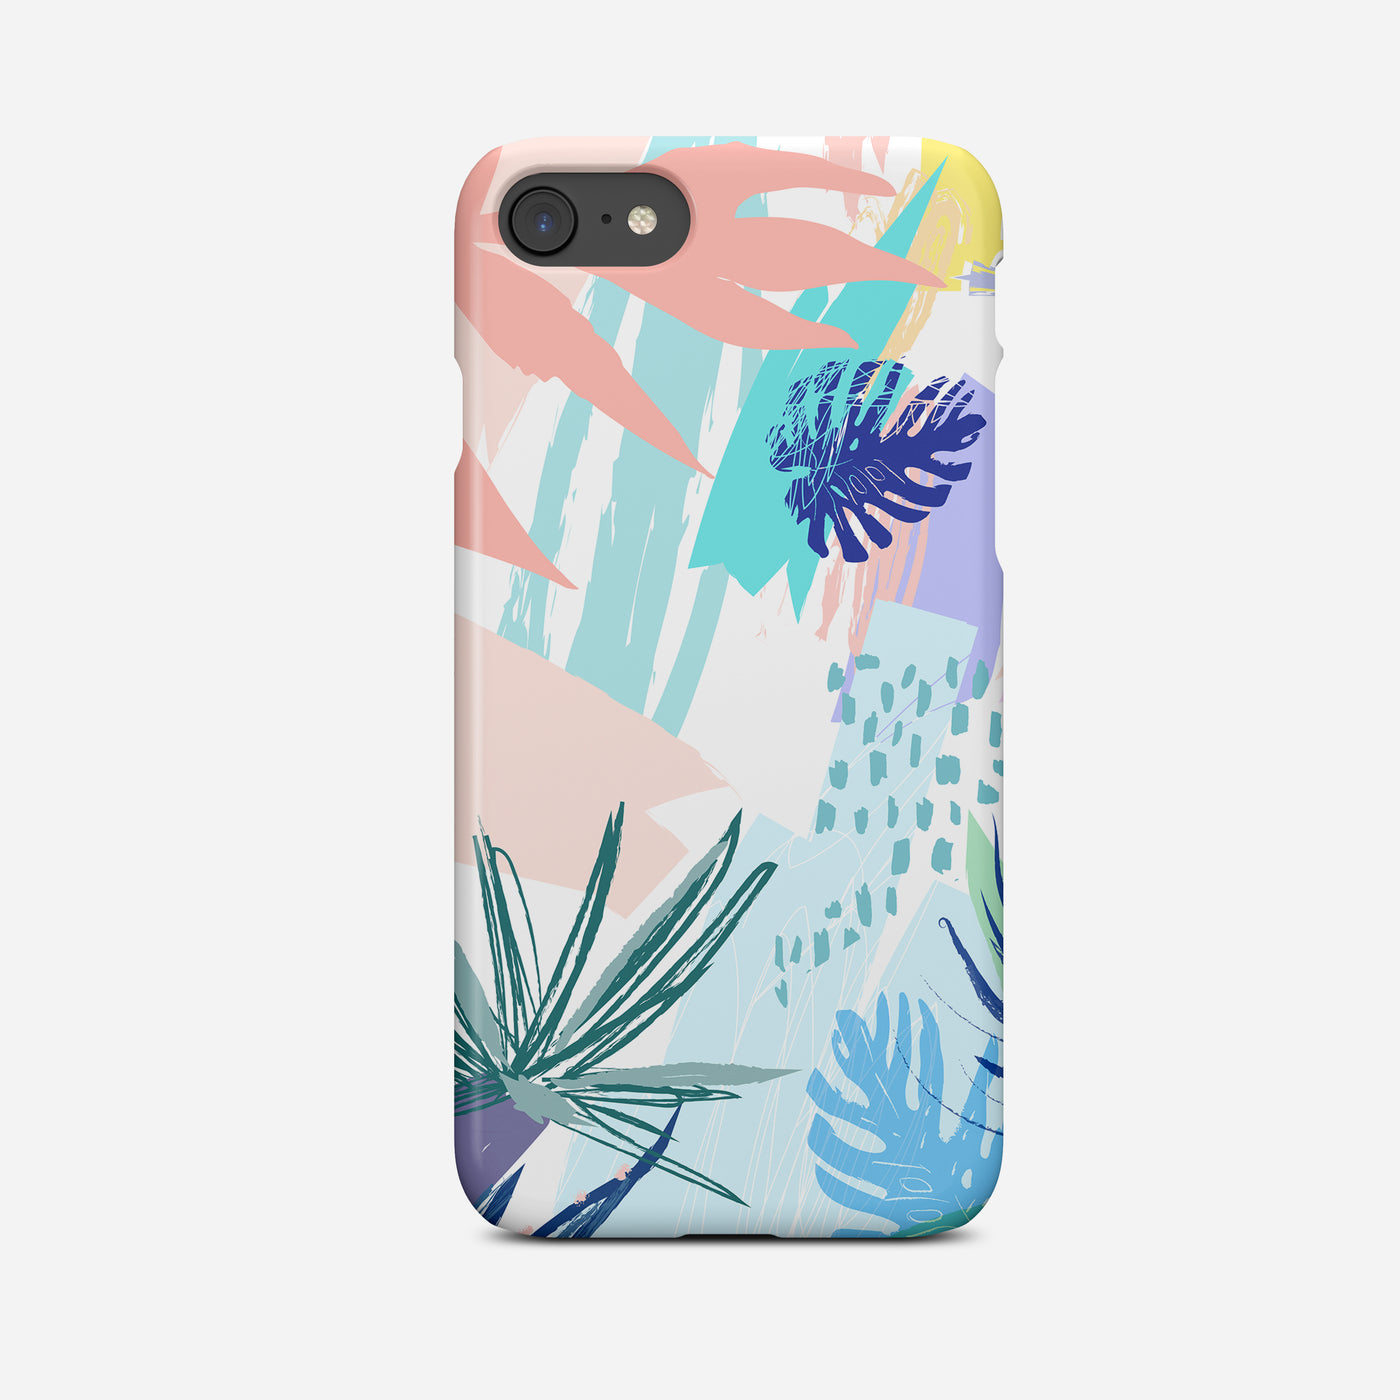 Tropical Abstract II Art Phone Case - Pretty in Print Art